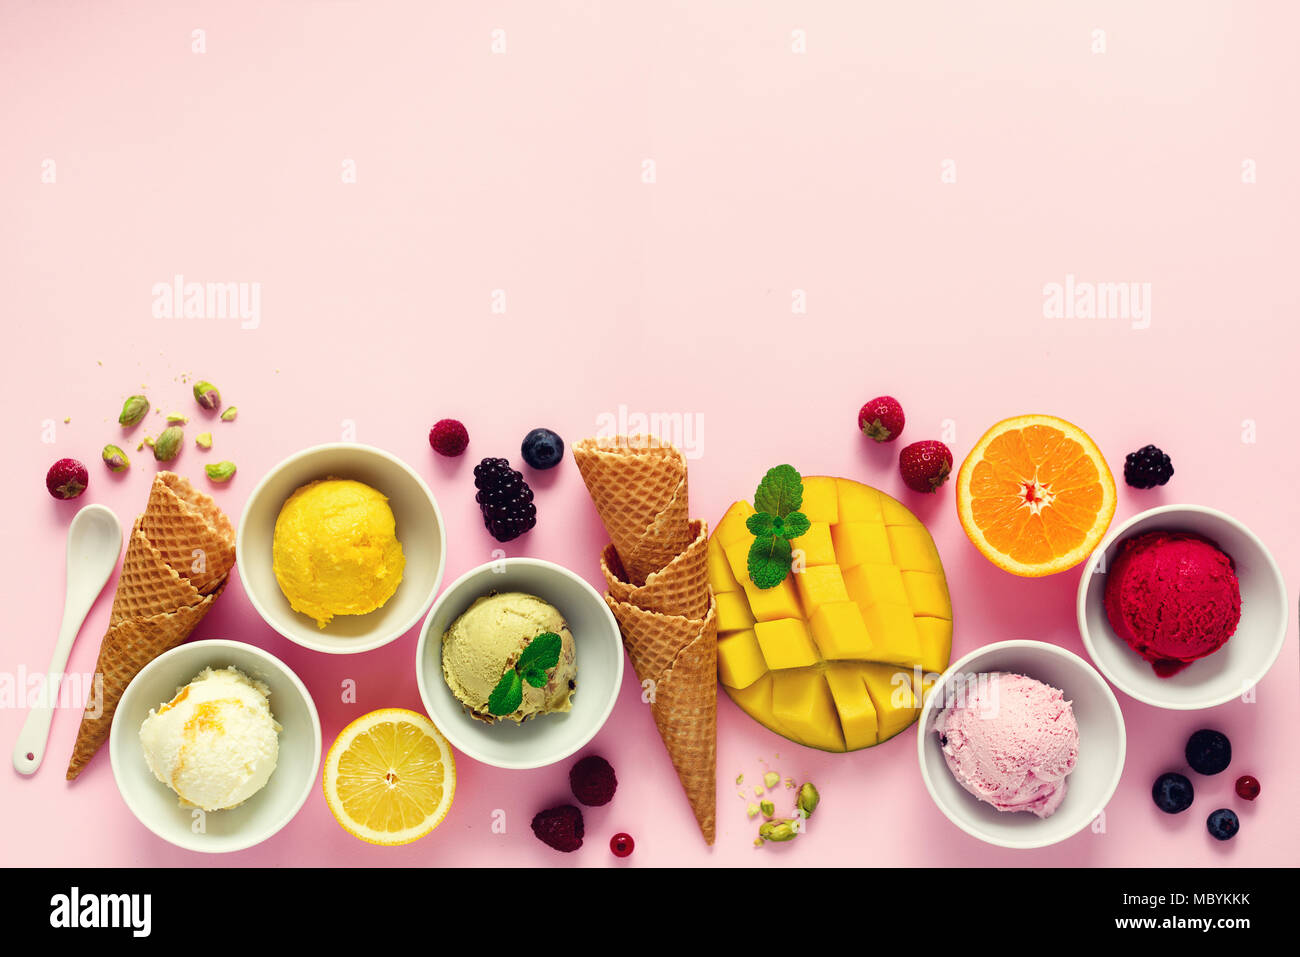 Ice cream balls in bowls, waffle cones, berries, orange, mango, pistachio on pink shabby chic background. Colorful collection, flat lay, summer concept, top view - Stock Image